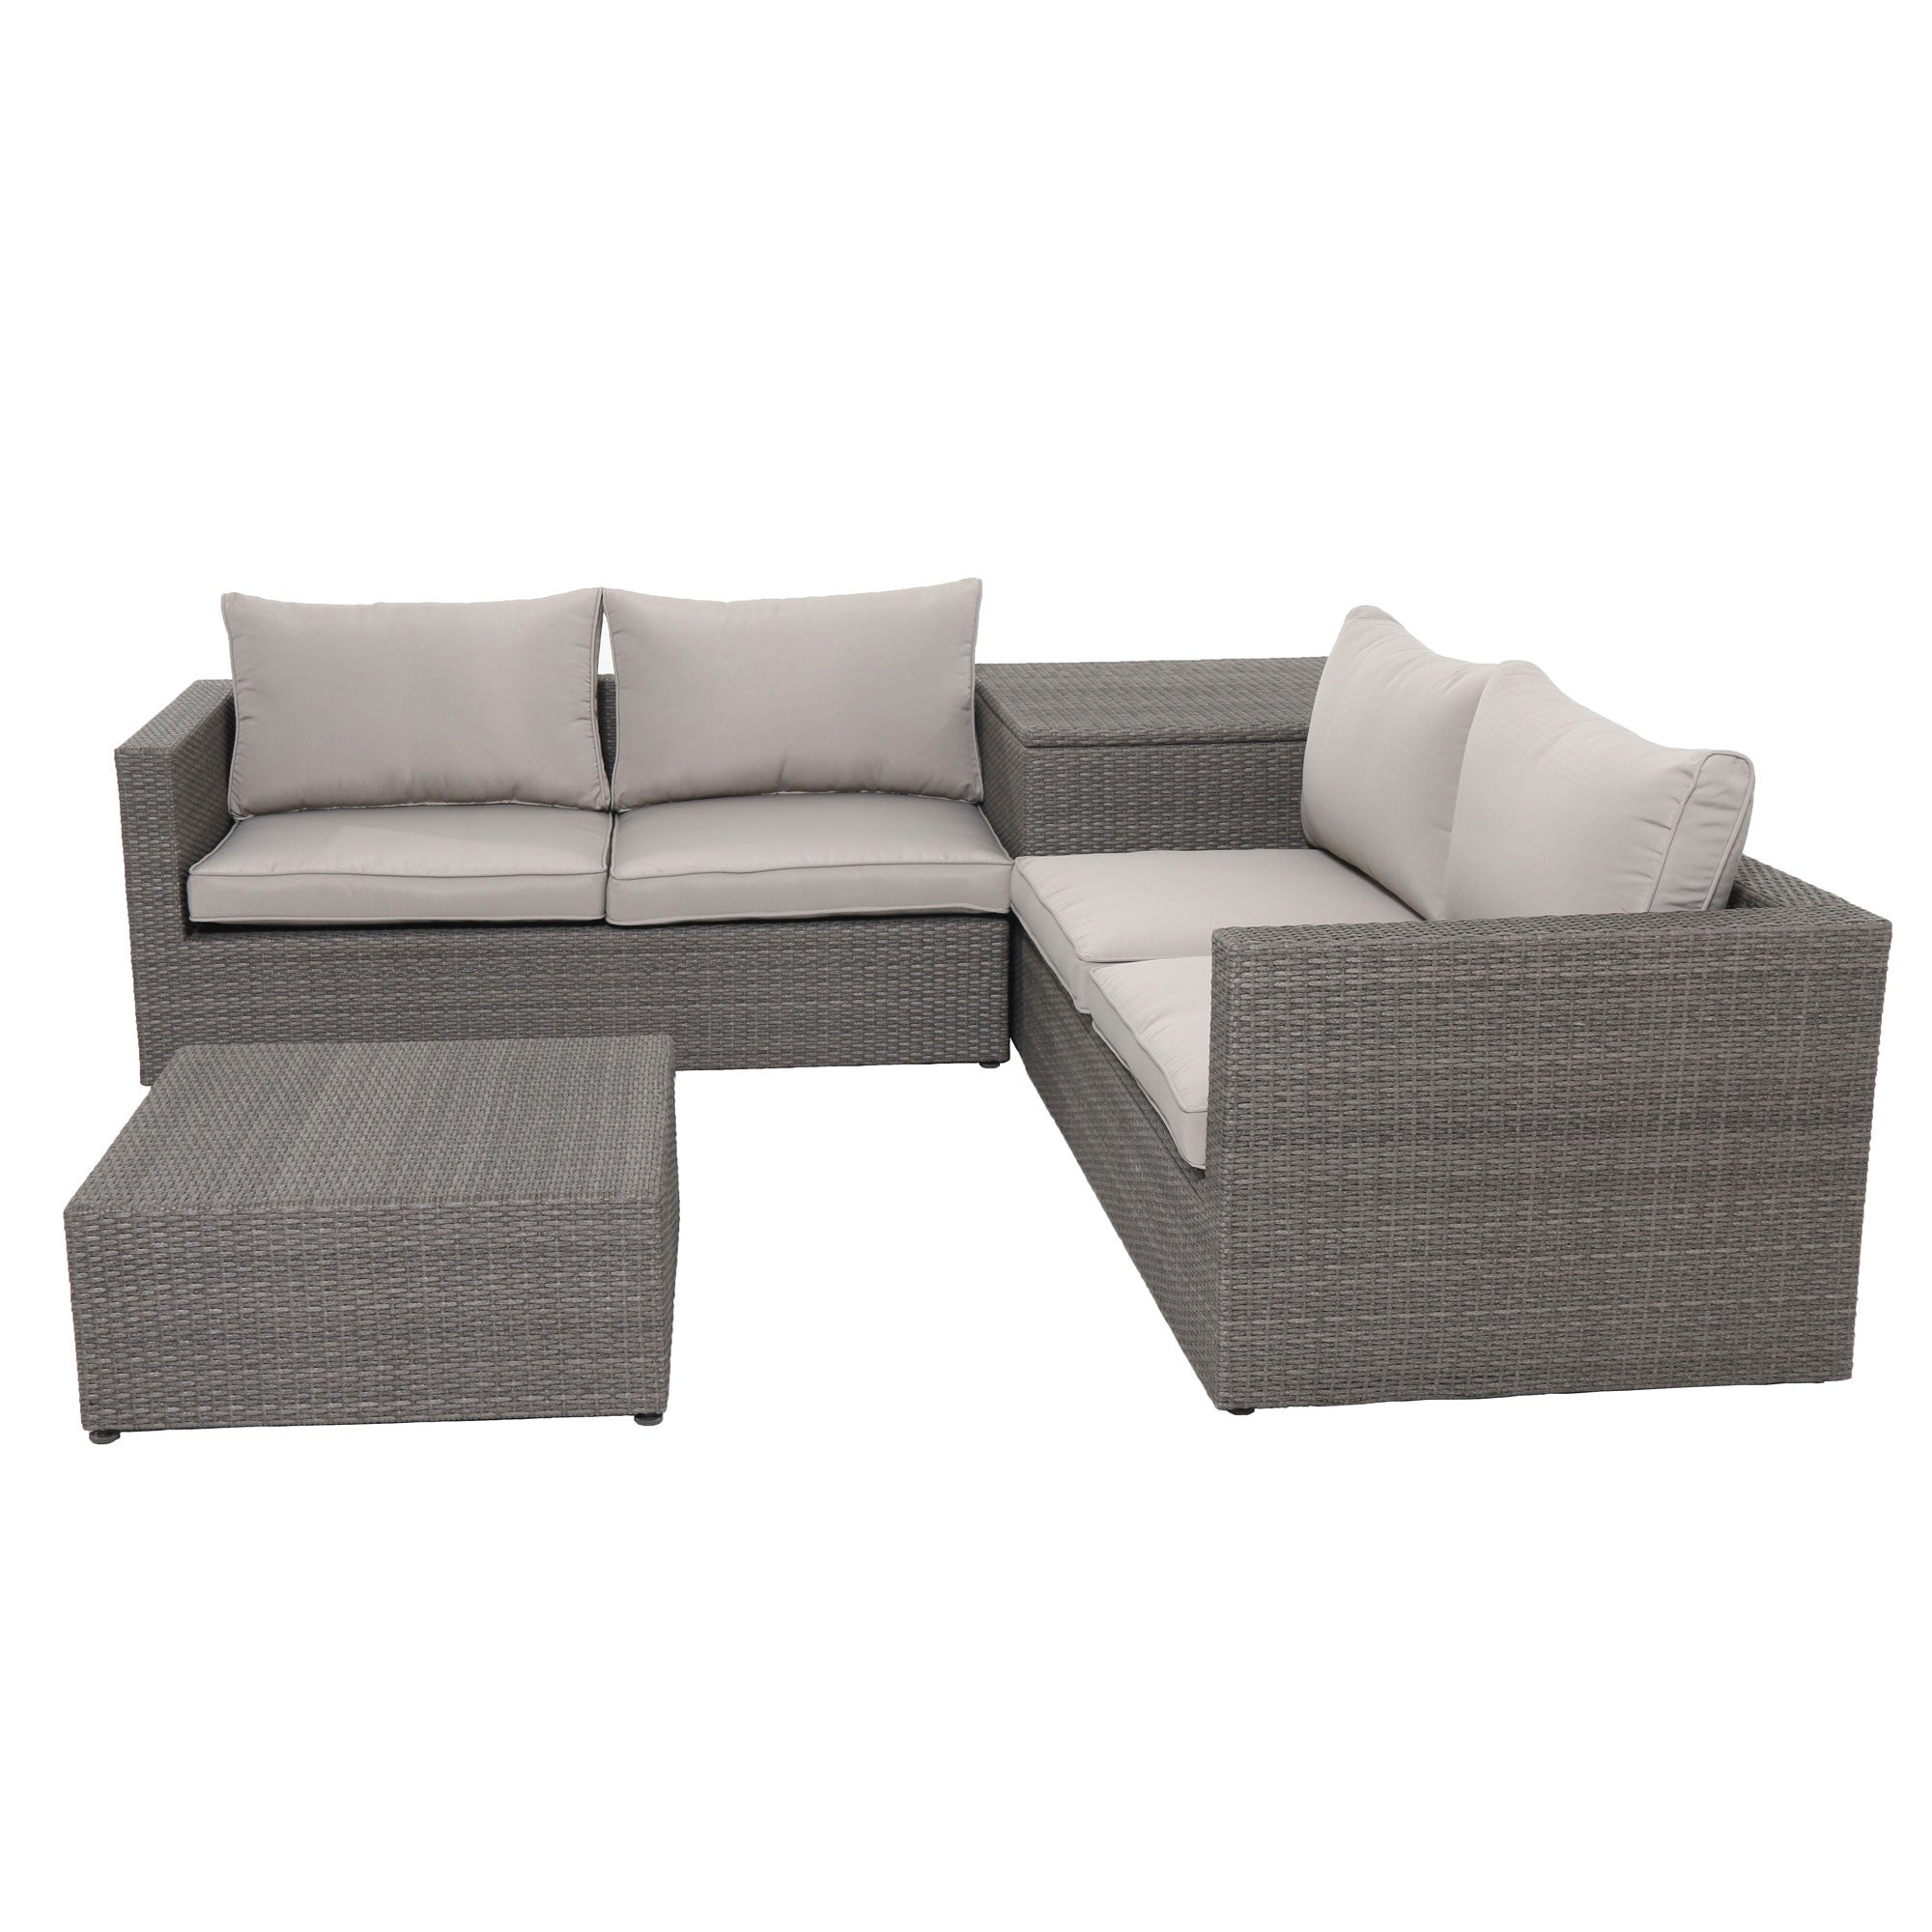 ... Nelson 4pc Resin Rattan Wicker Chair Sofa Loveseat Coffee Table Set ...